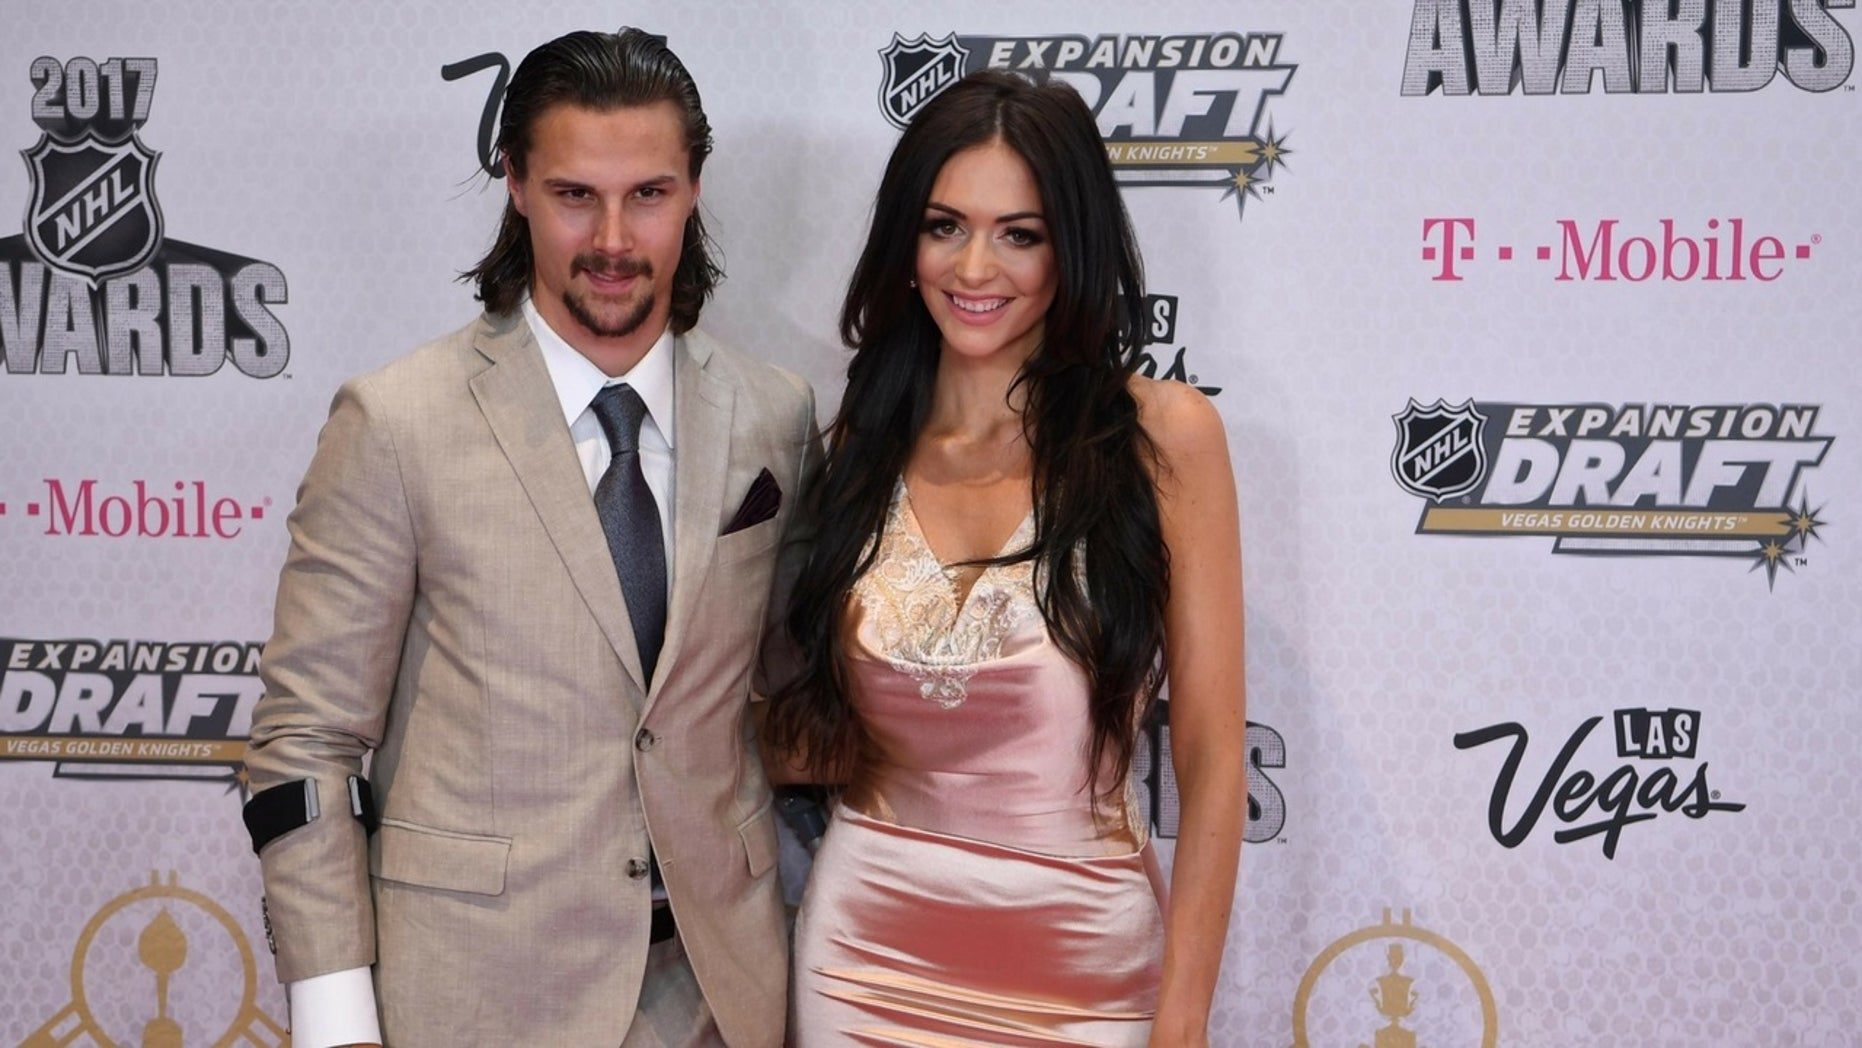 The NHL community offered their support to Ottawa Senators player Erik Karlsson and his wife Melinda who lost their son one month before his due date.